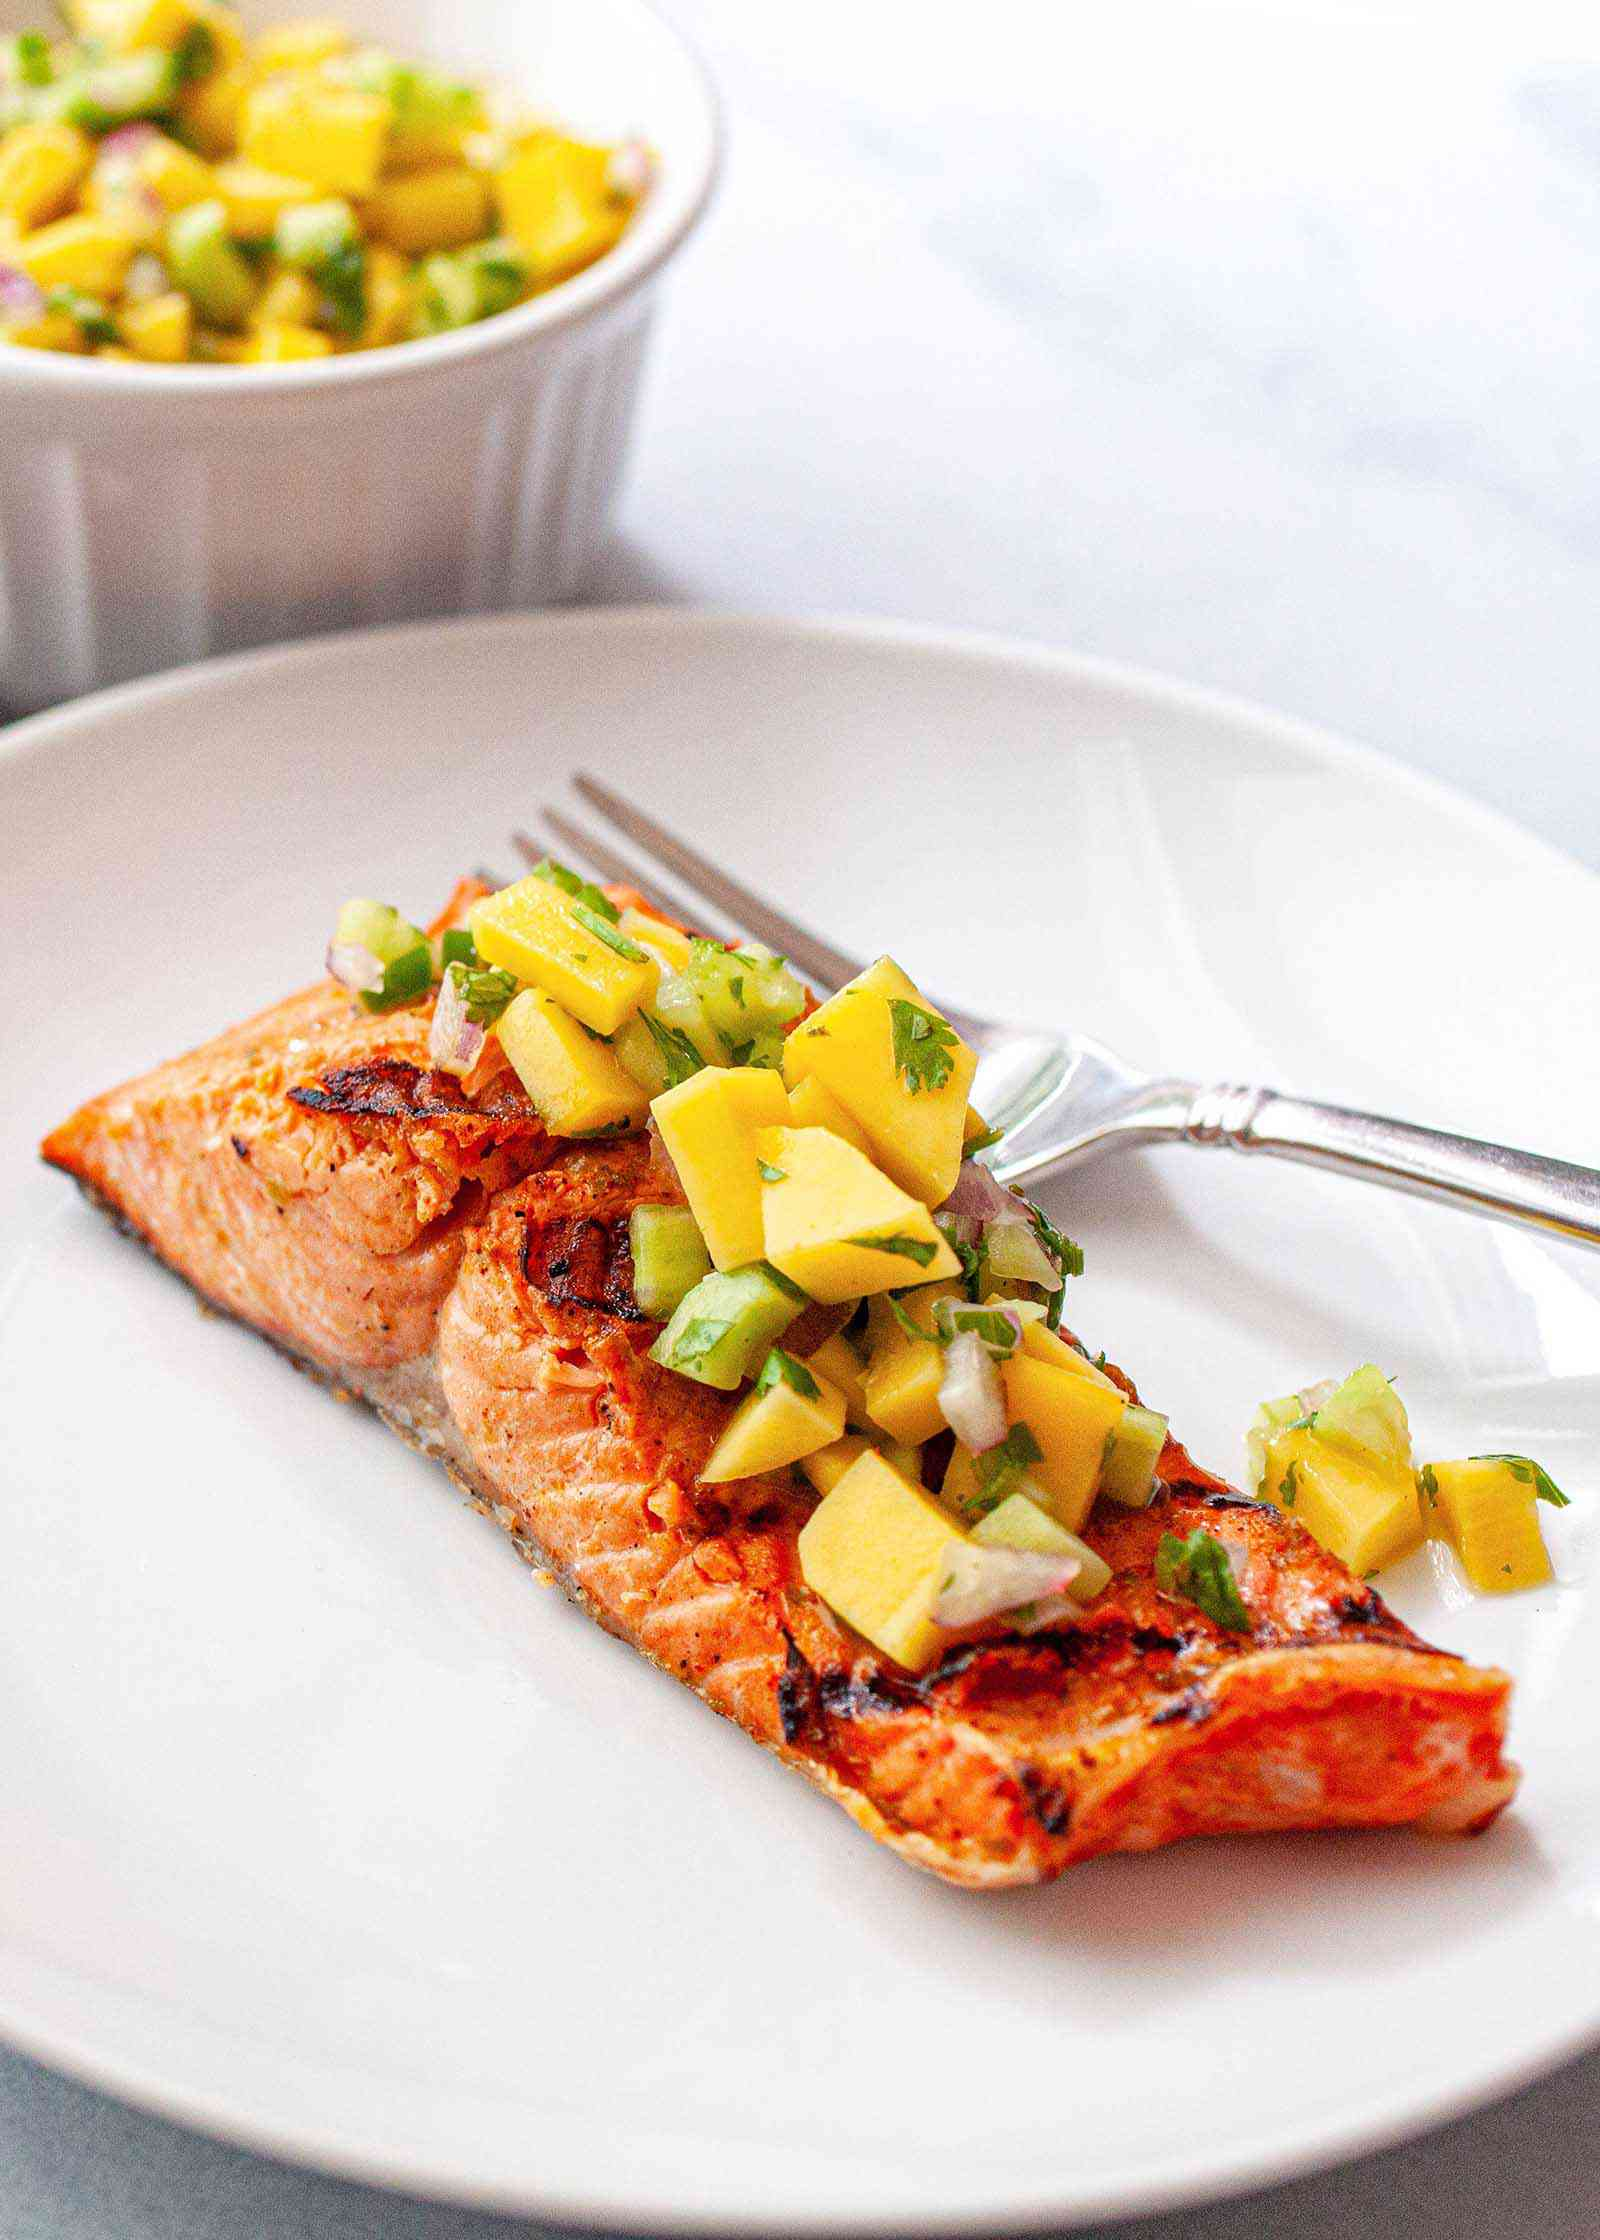 Grilled Salmon with Skin - grilled salmon portions on a plate with fresh salsa and a fork